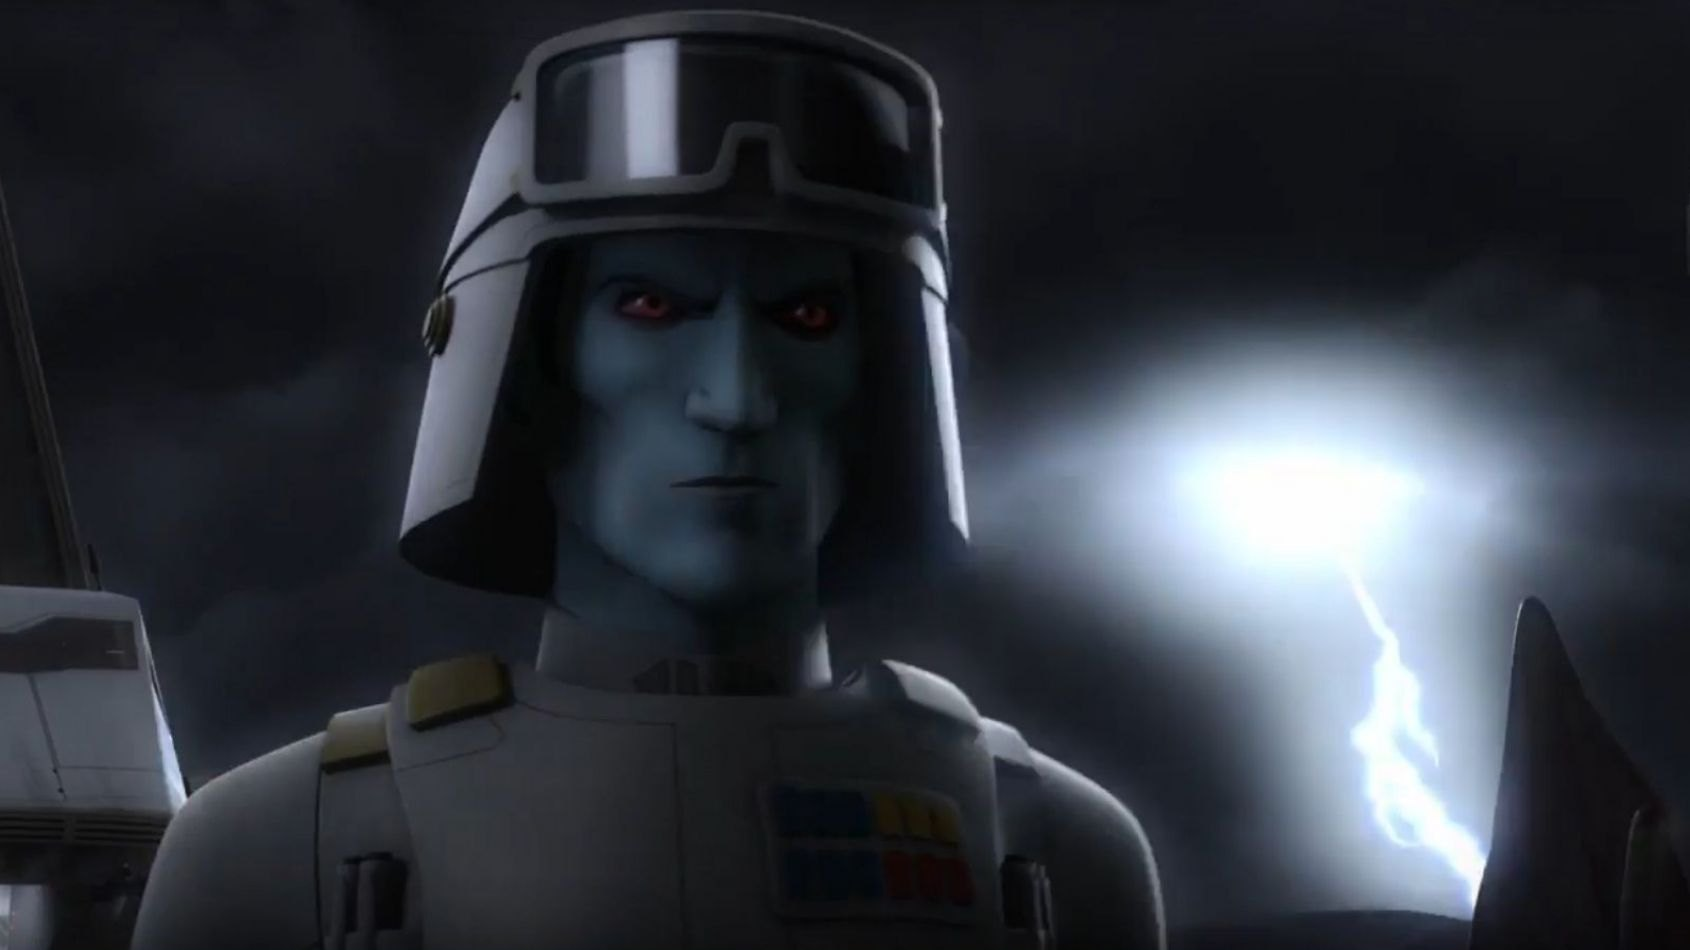 Un trailer pour le final de la saison 3 de Rebels